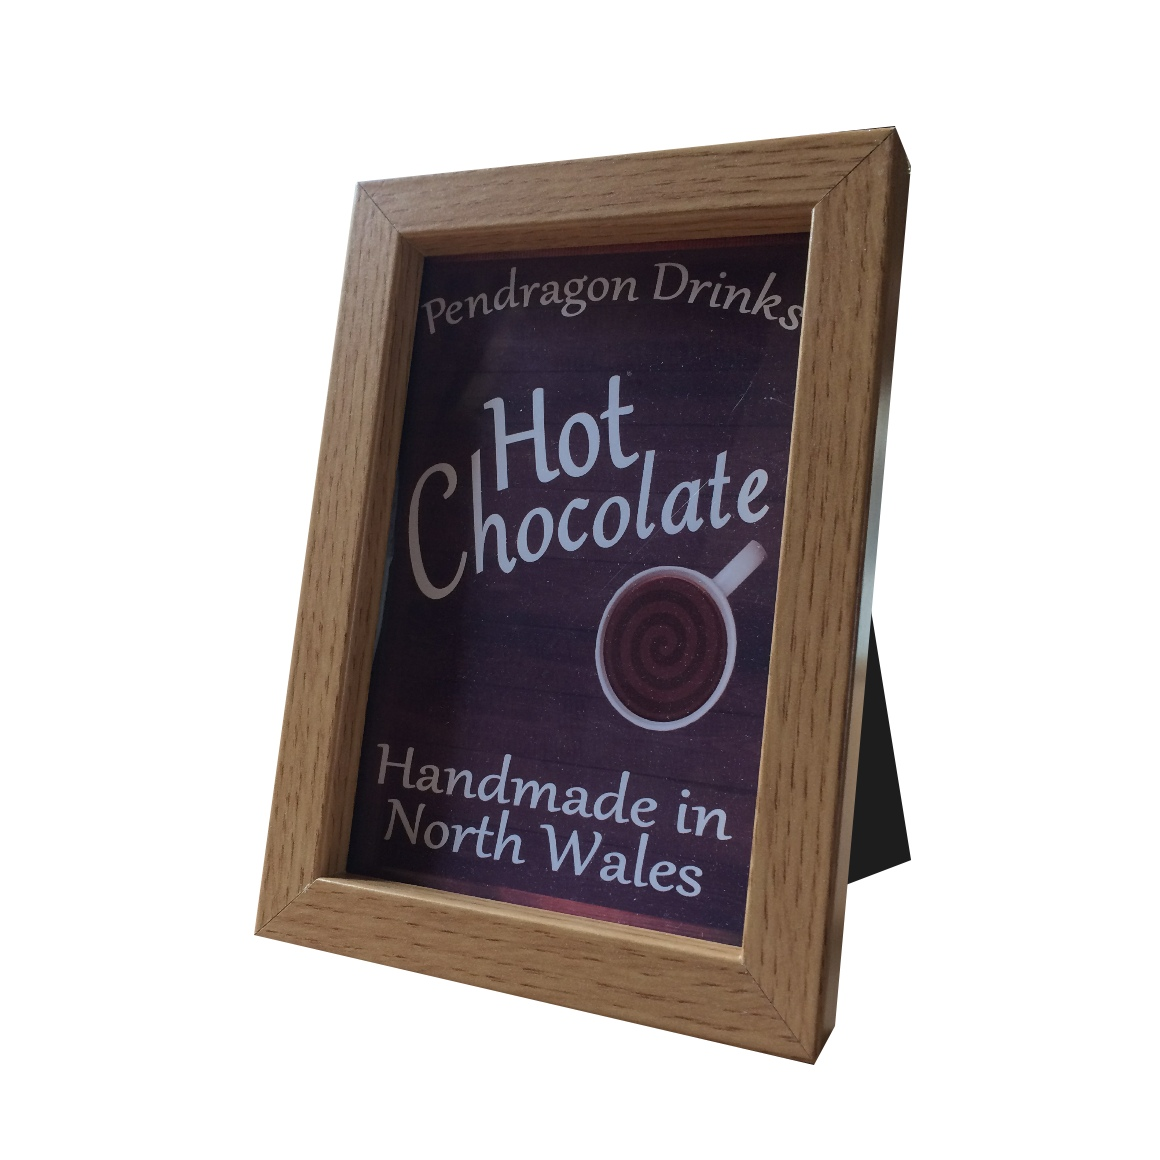 pendragon drinks display, catering hot chocolate